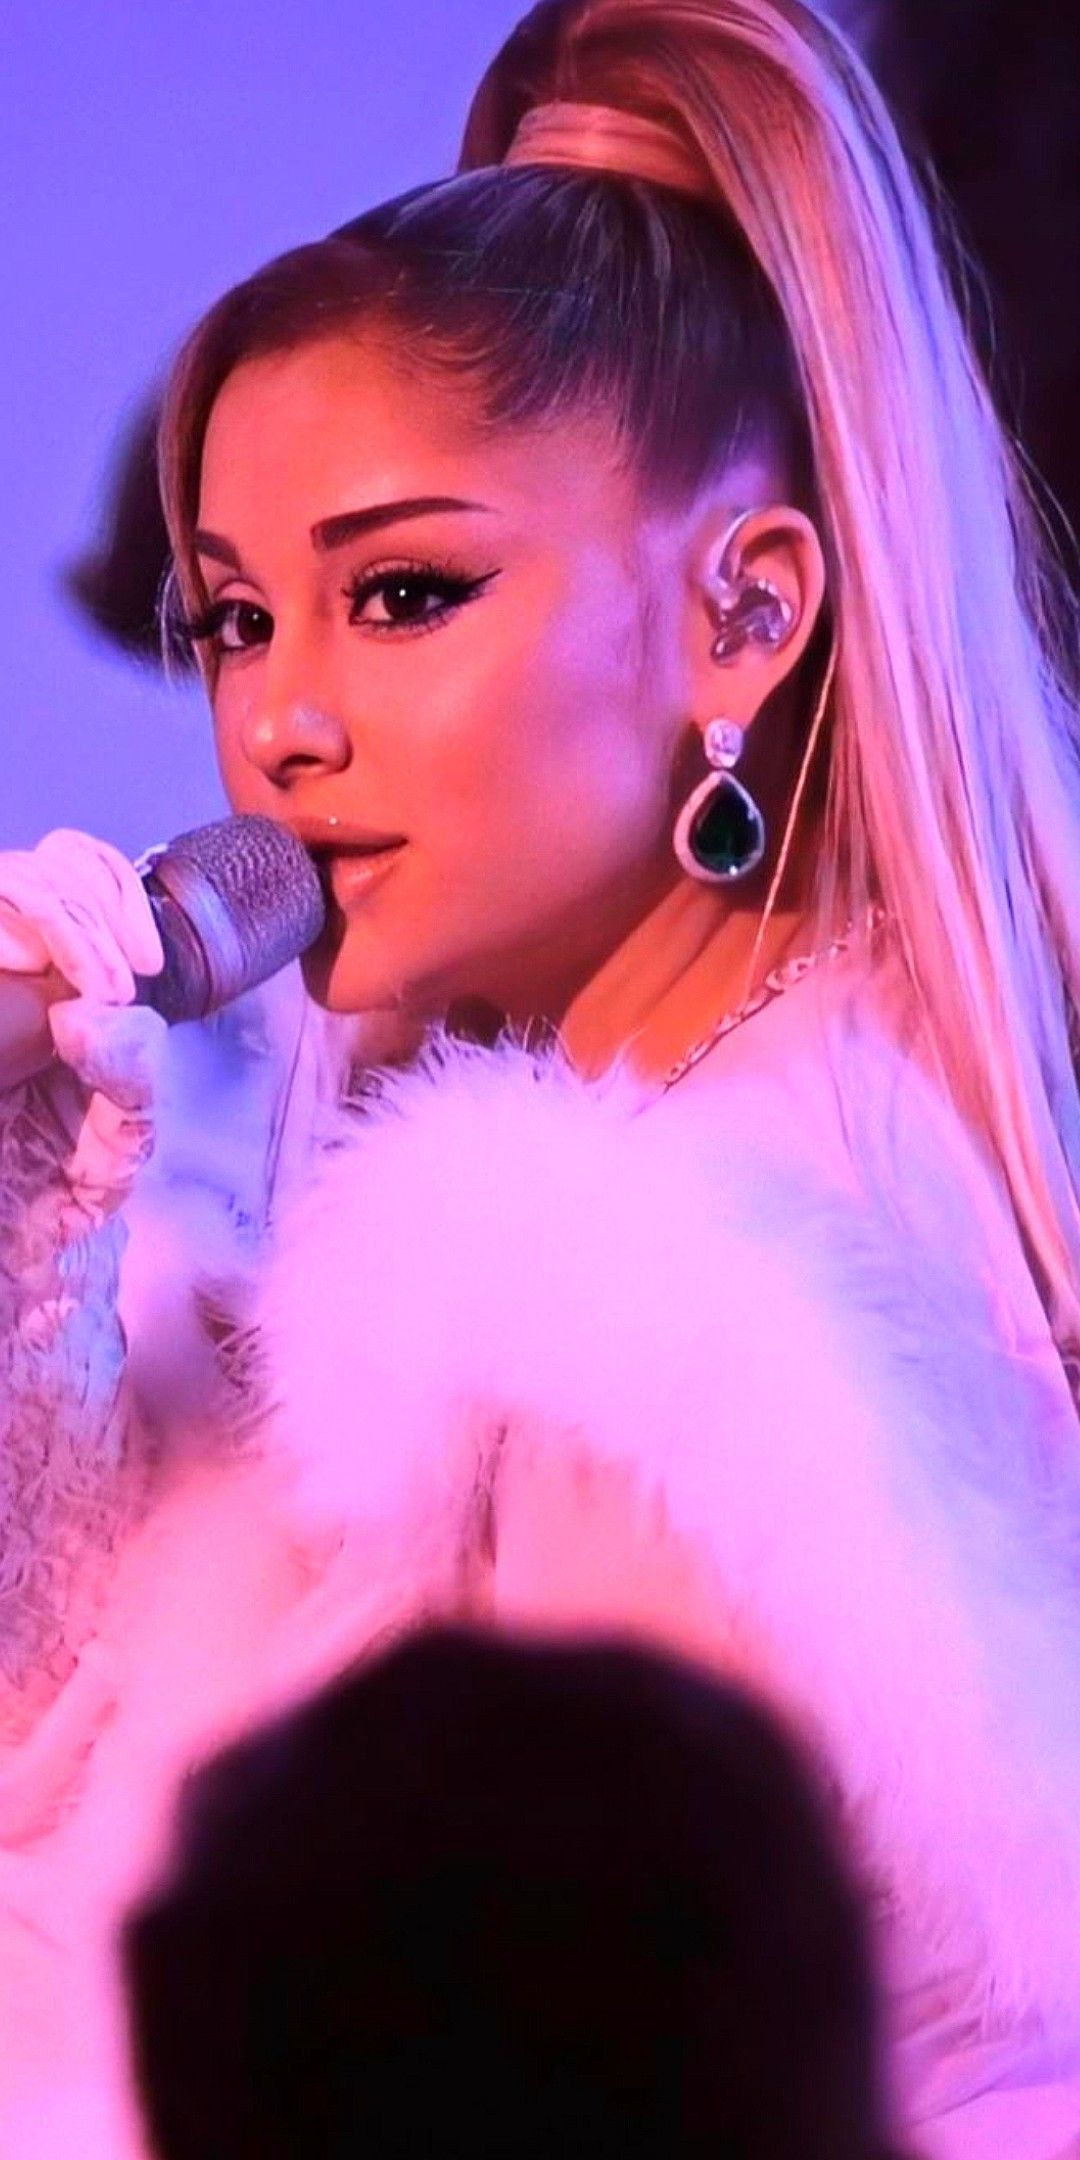 Pin By Nikolina Paunovic On Ariana Grande In 2020 Ariana Grande